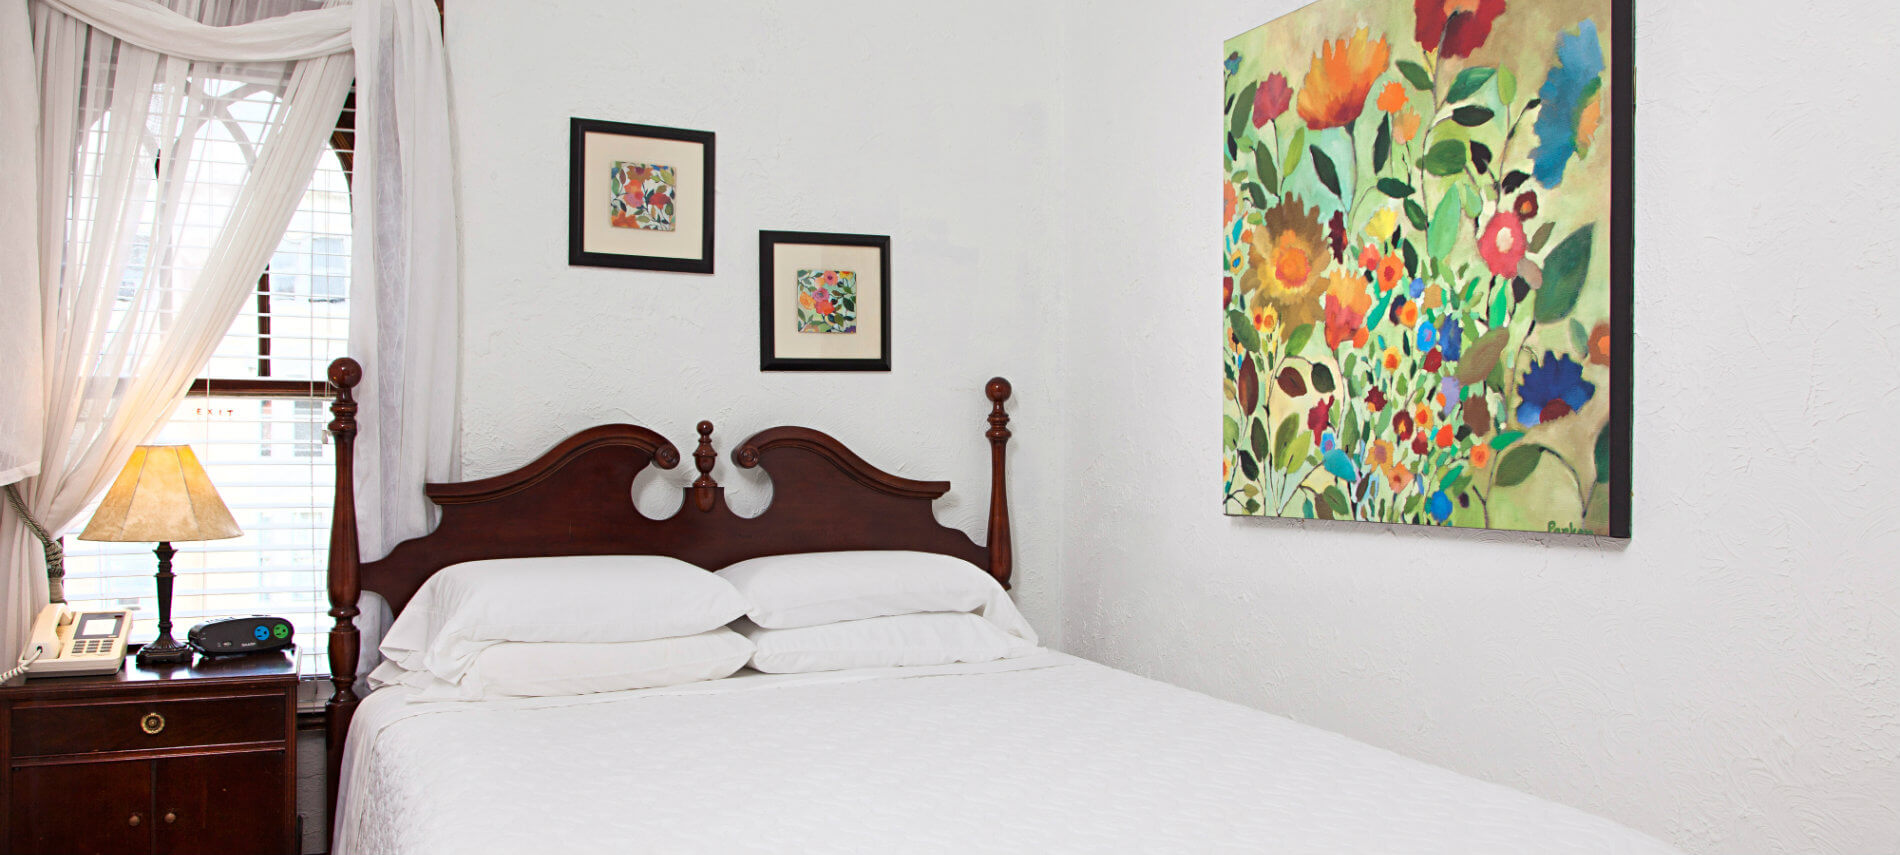 White airy room with wooden bed with light cover